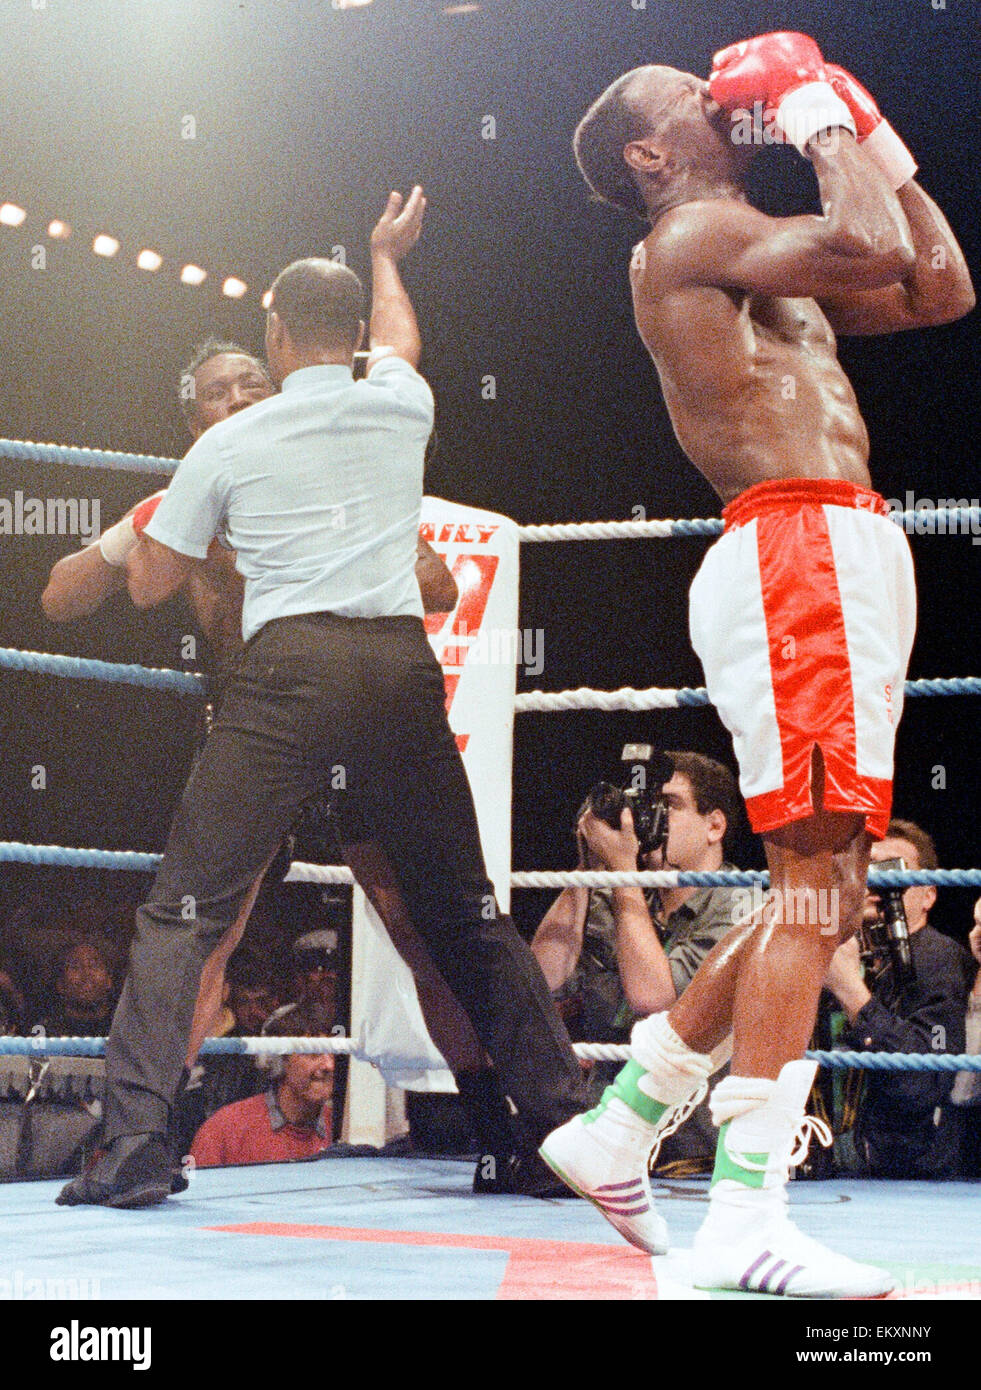 The referee stops the bout as Chris Eubank celebrates his victory over Nigel Benn the NEC in Birmingham. 18th November - Stock Image